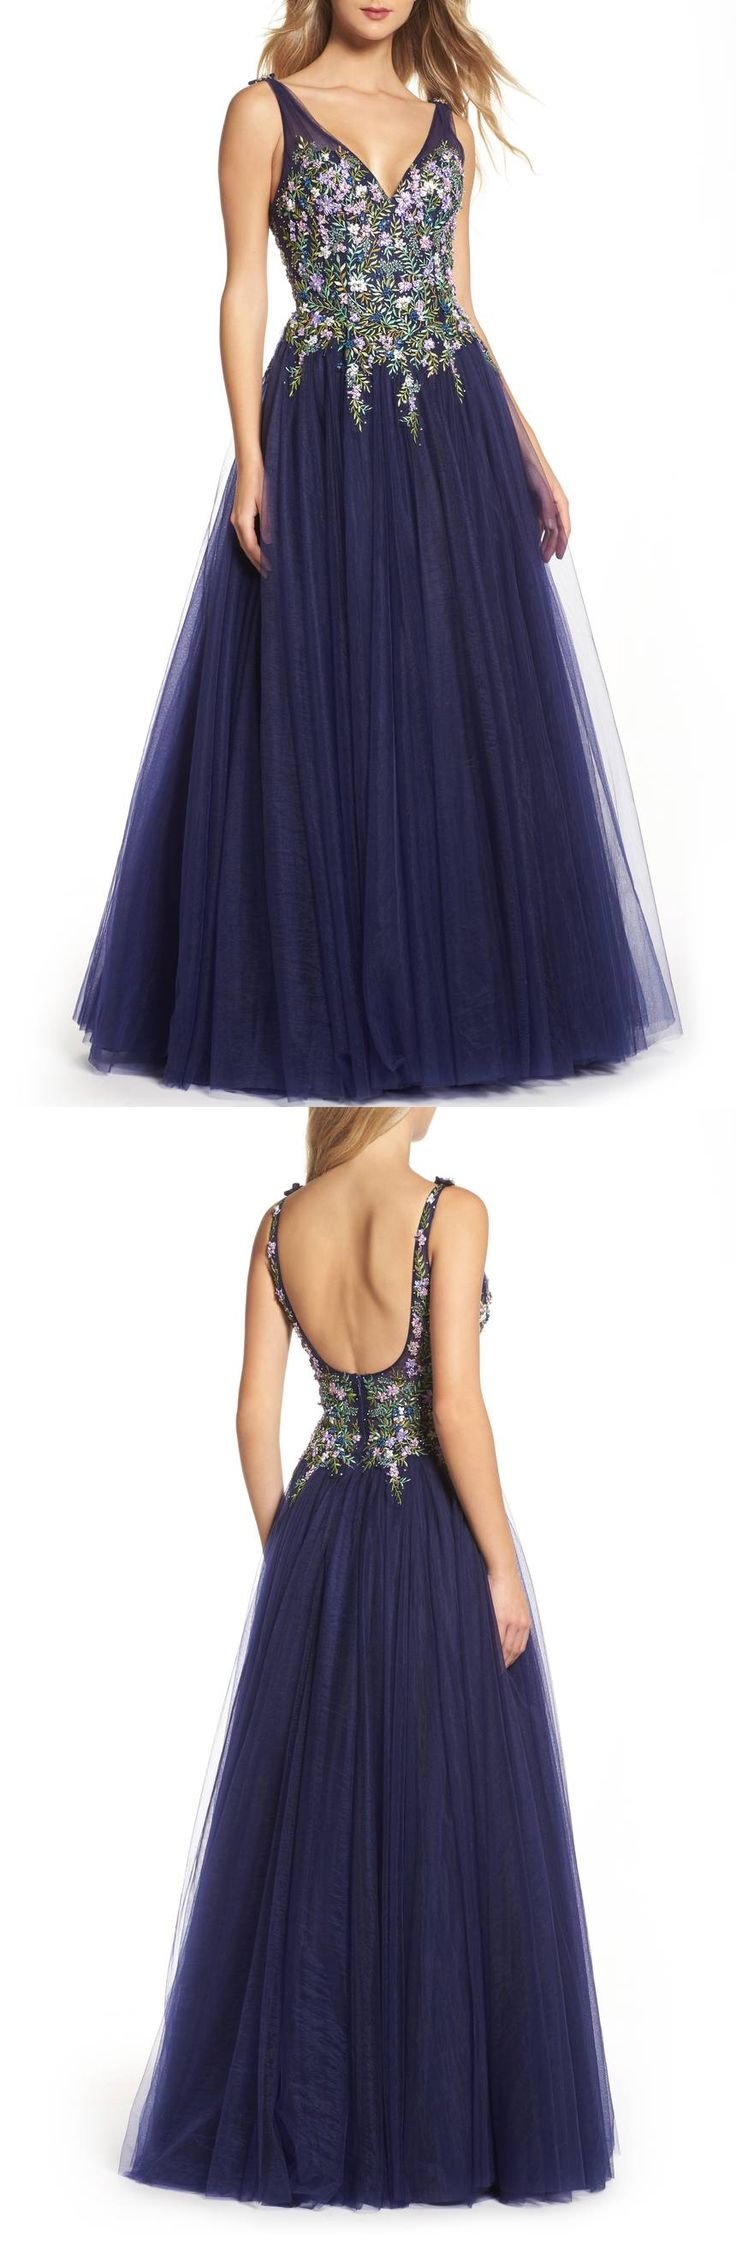 Indigo Embroidered Bodice Ballgown by Mac Duggal #dress  #formaldress #formalgown #eveninggown #fashion #womensfashion formal dress | formal dresses for teens |  Formal Dresses | formal dress |  Formal Dresses | Formal Dress Outfits